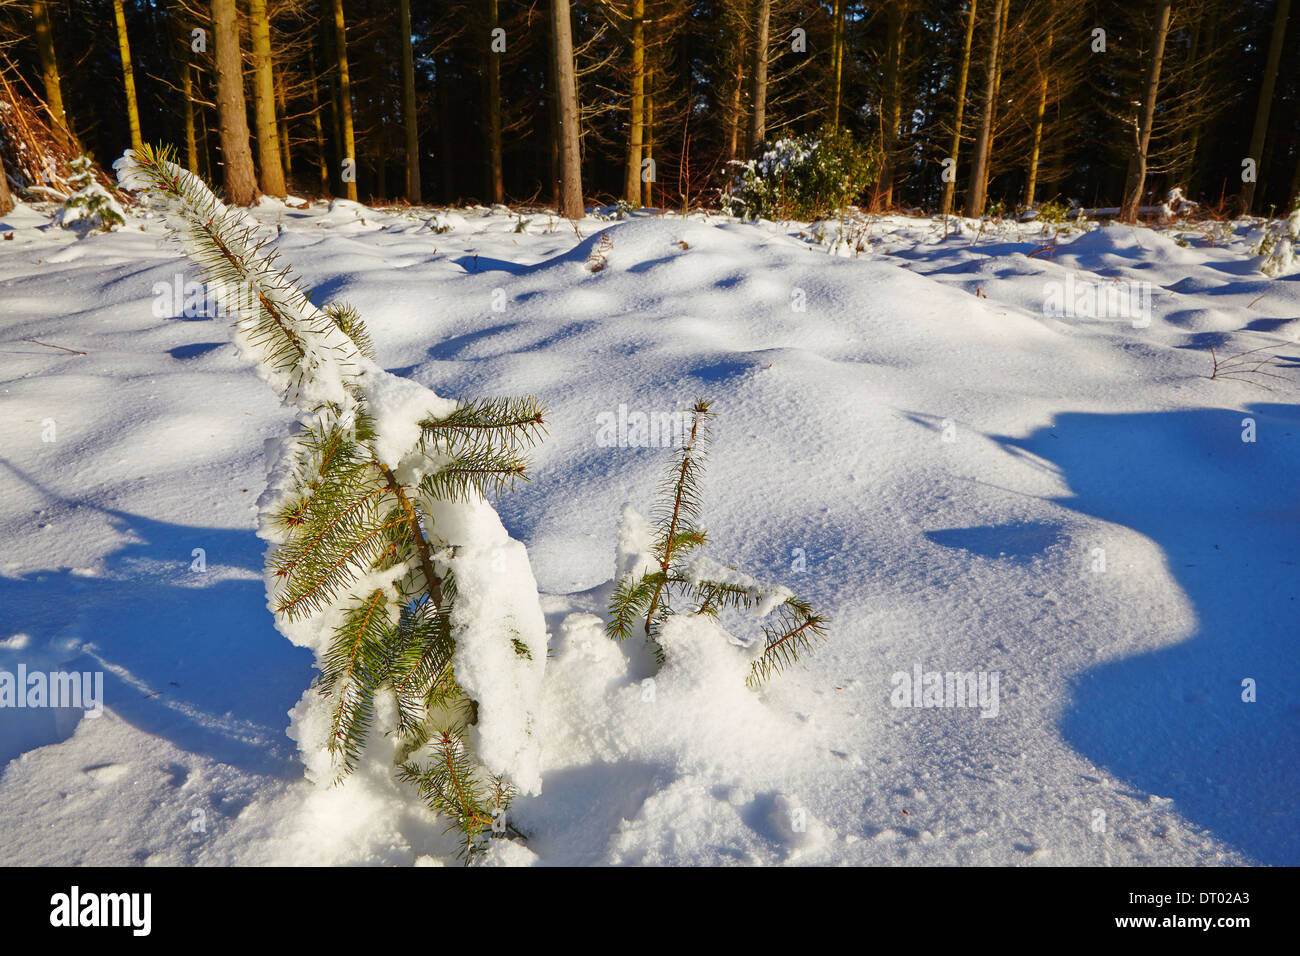 A conifer sapling in forest in deep snow, in the Haldon Hills nr Mamhead, nr Exeter, Devon, Great Britain. - Stock Image